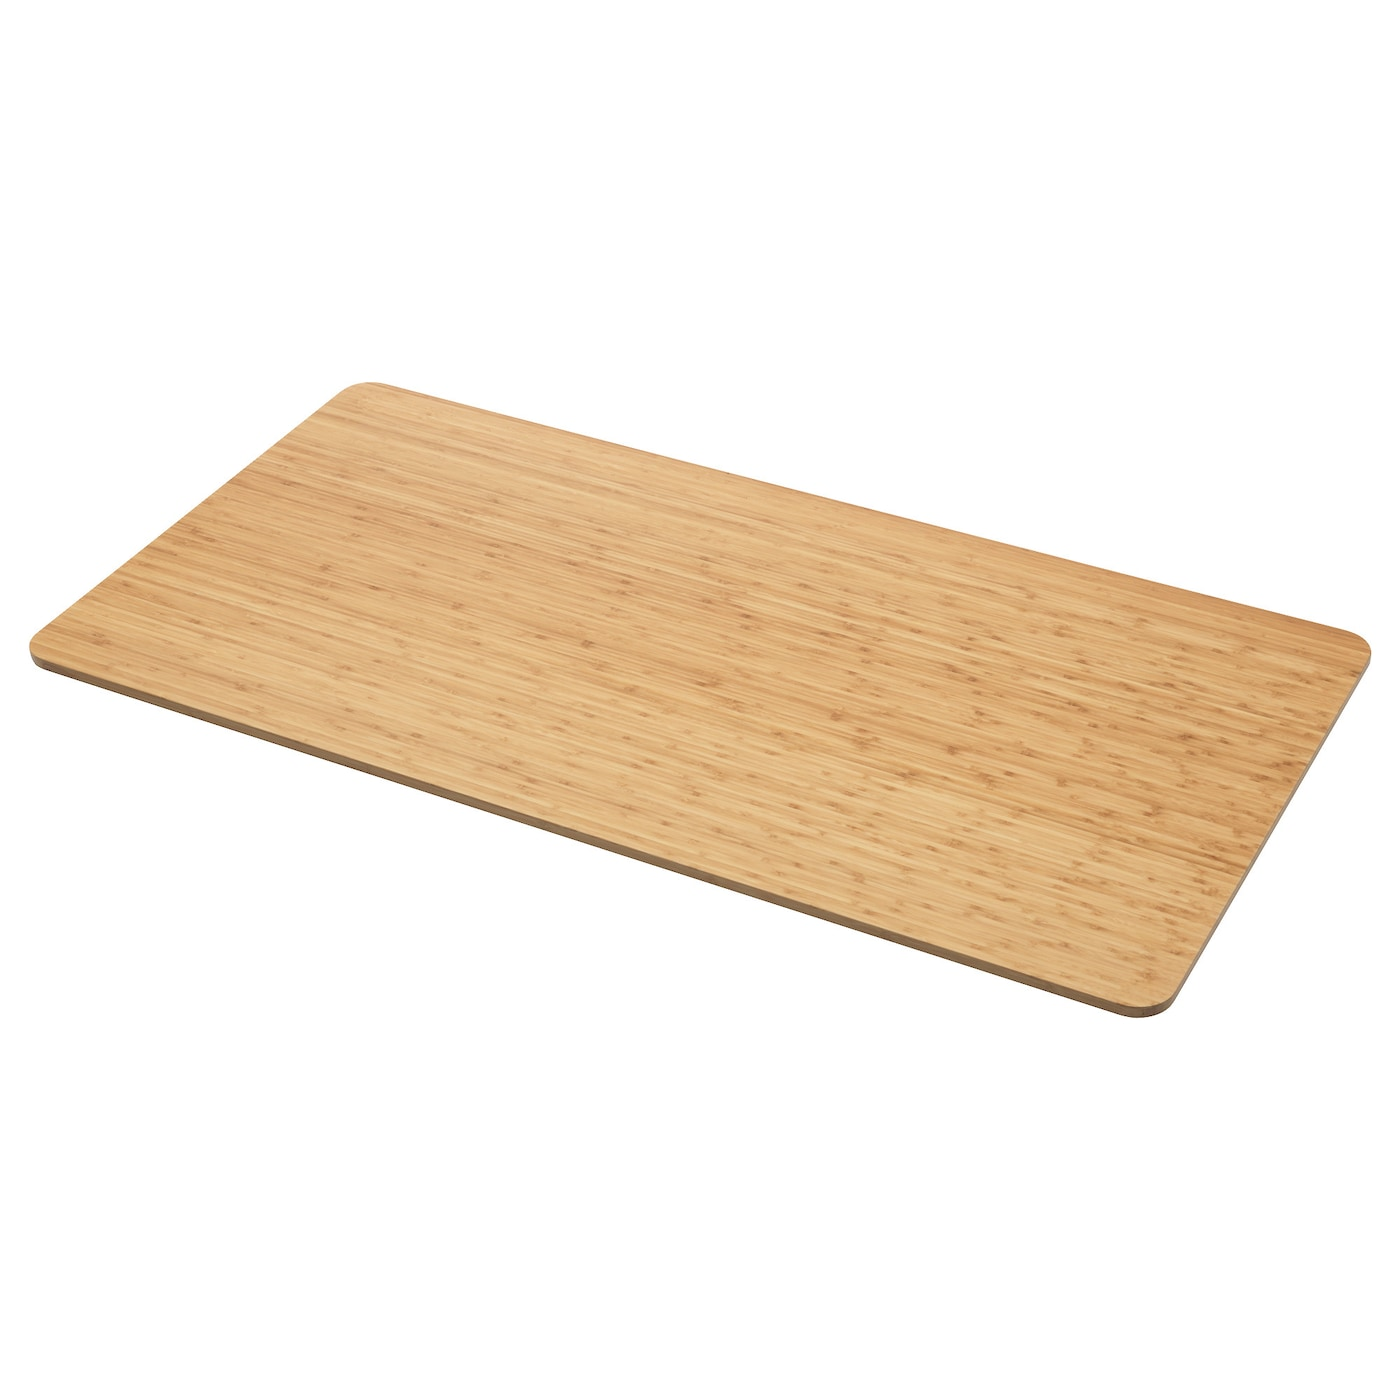 Vraryd table top bamboo 150x78x1 8 cm ikea - Ikea plateau de table ...